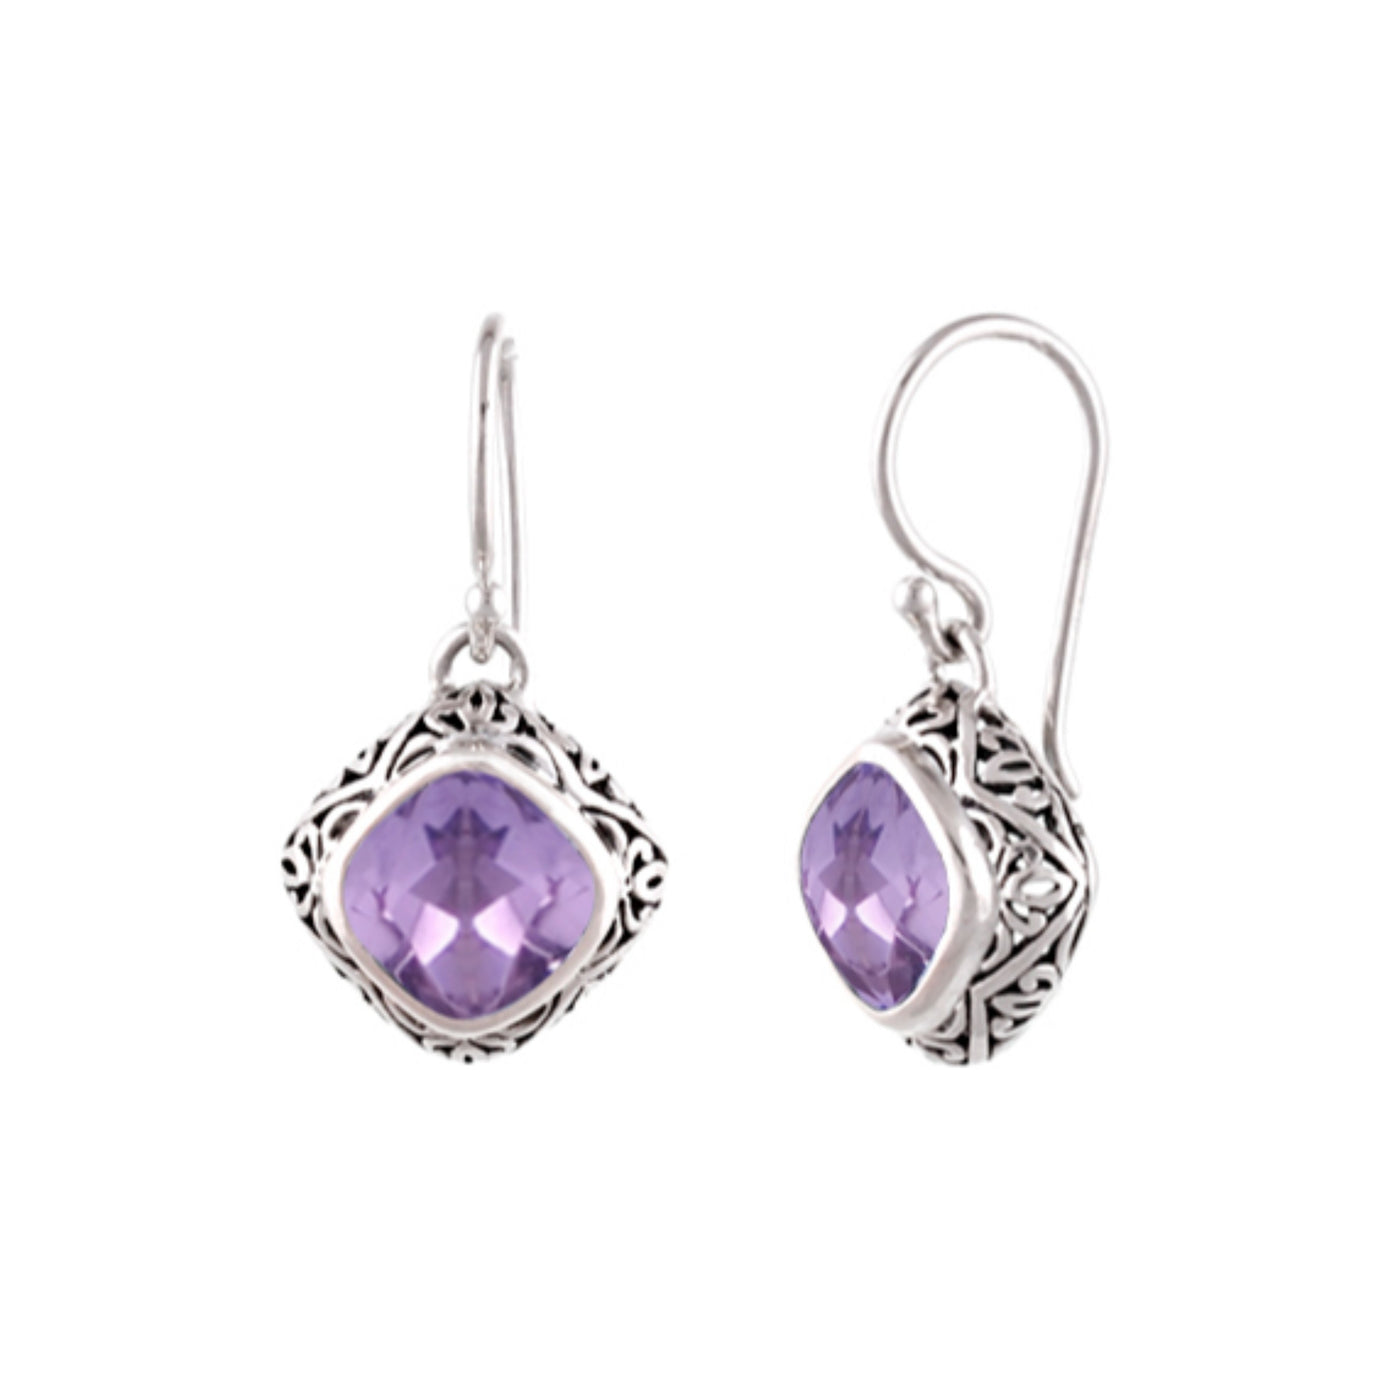 JD E55107AMY ORNATE AMETHYST DROP EARRINGS AMY